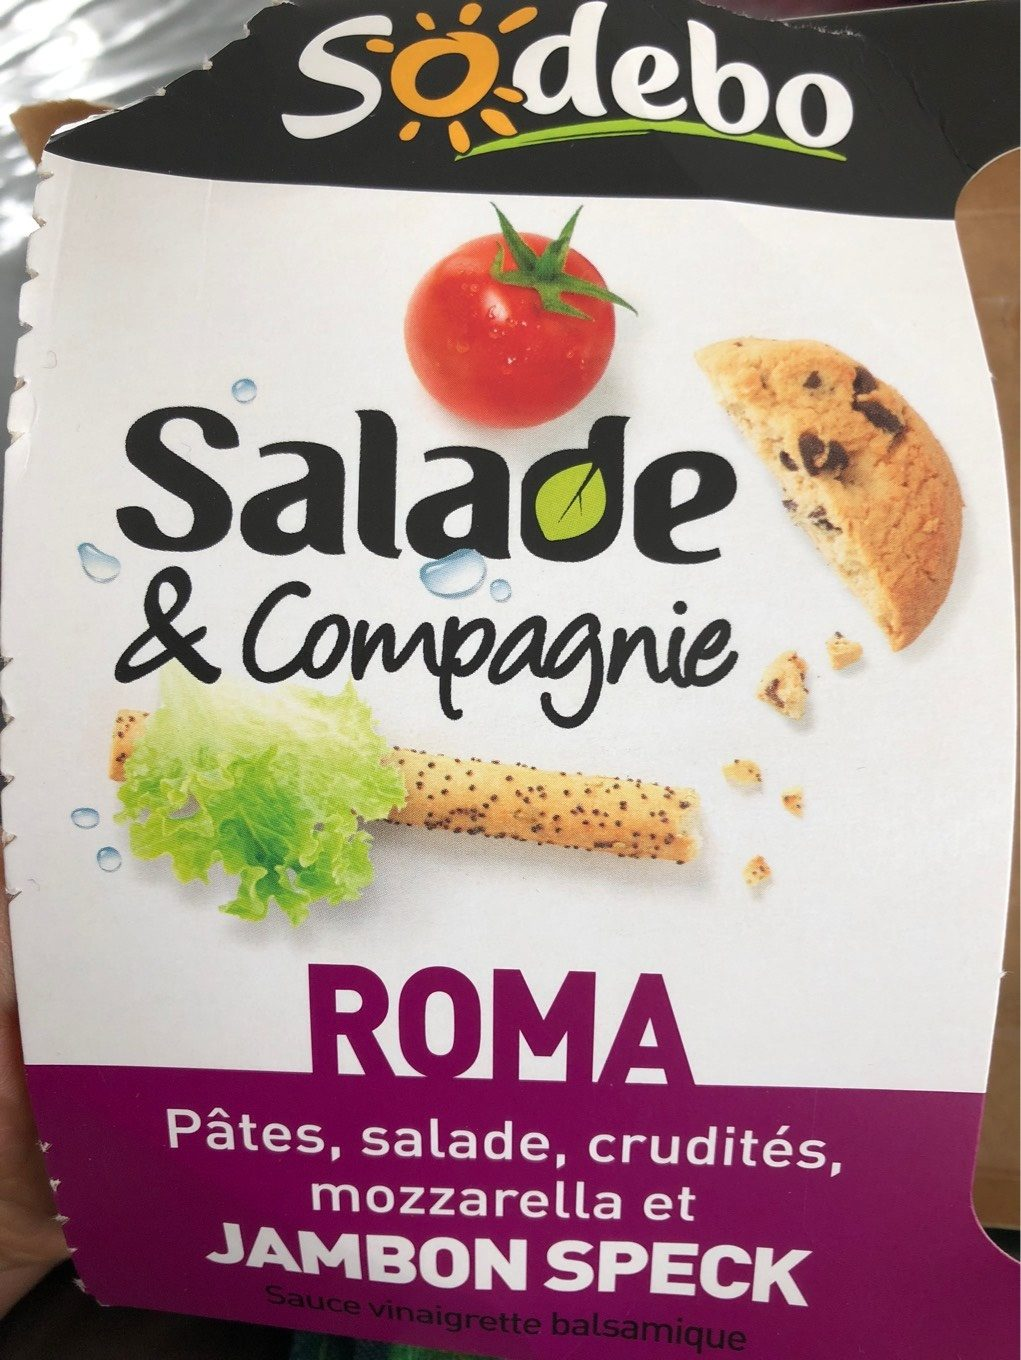 Cuisine Et Compagnie Salade Et Compagnie Roma Sodebo